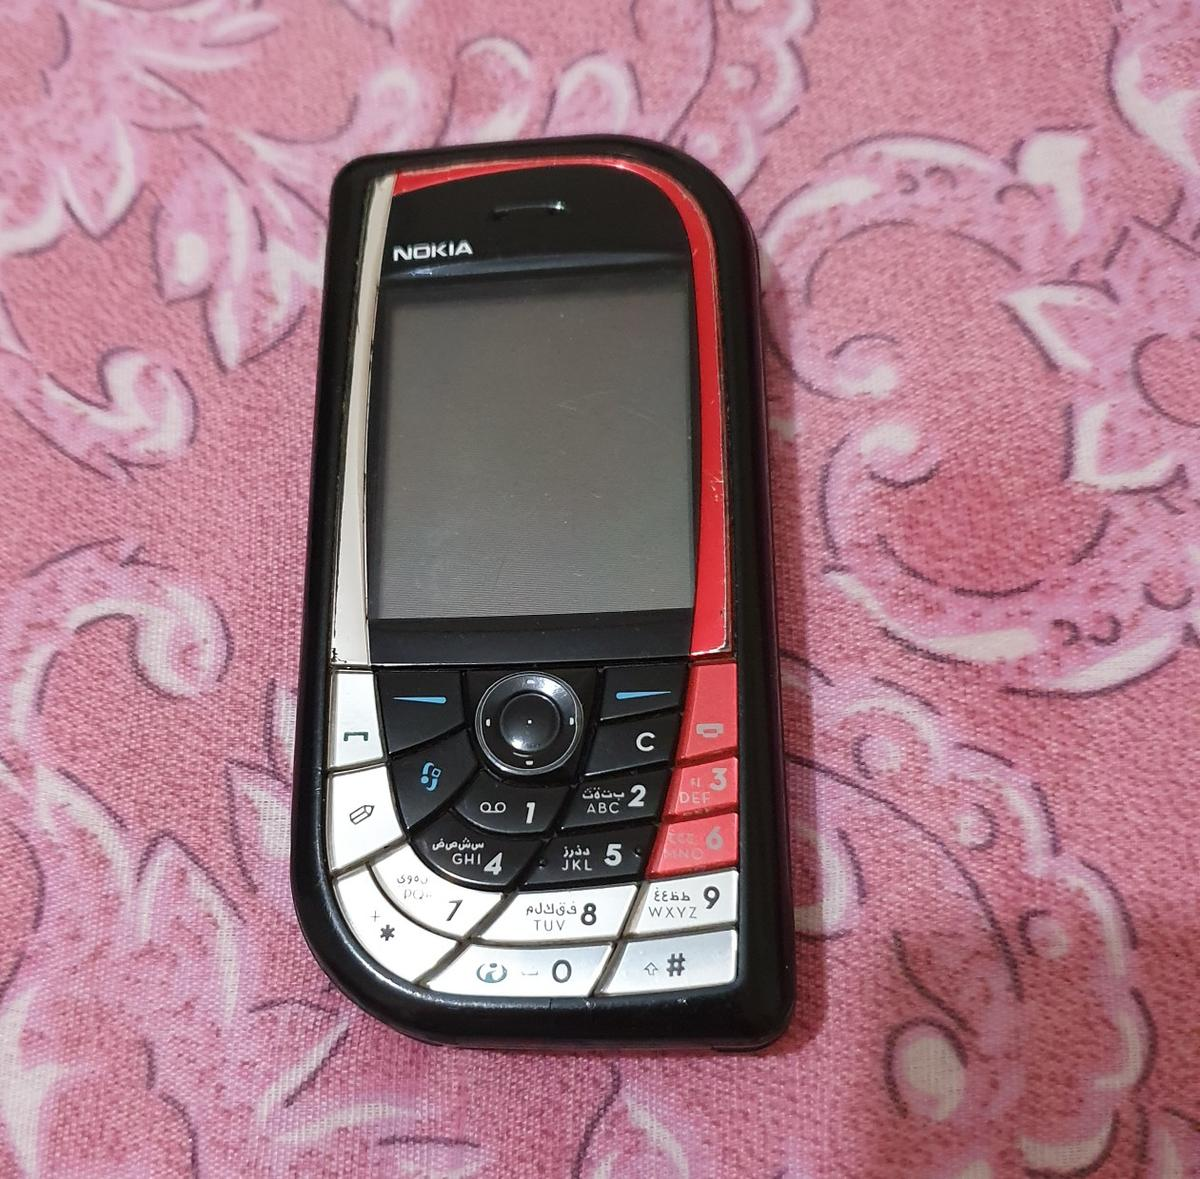 Nokia 7610 In Sm4 London For 40 00 For Sale Shpock